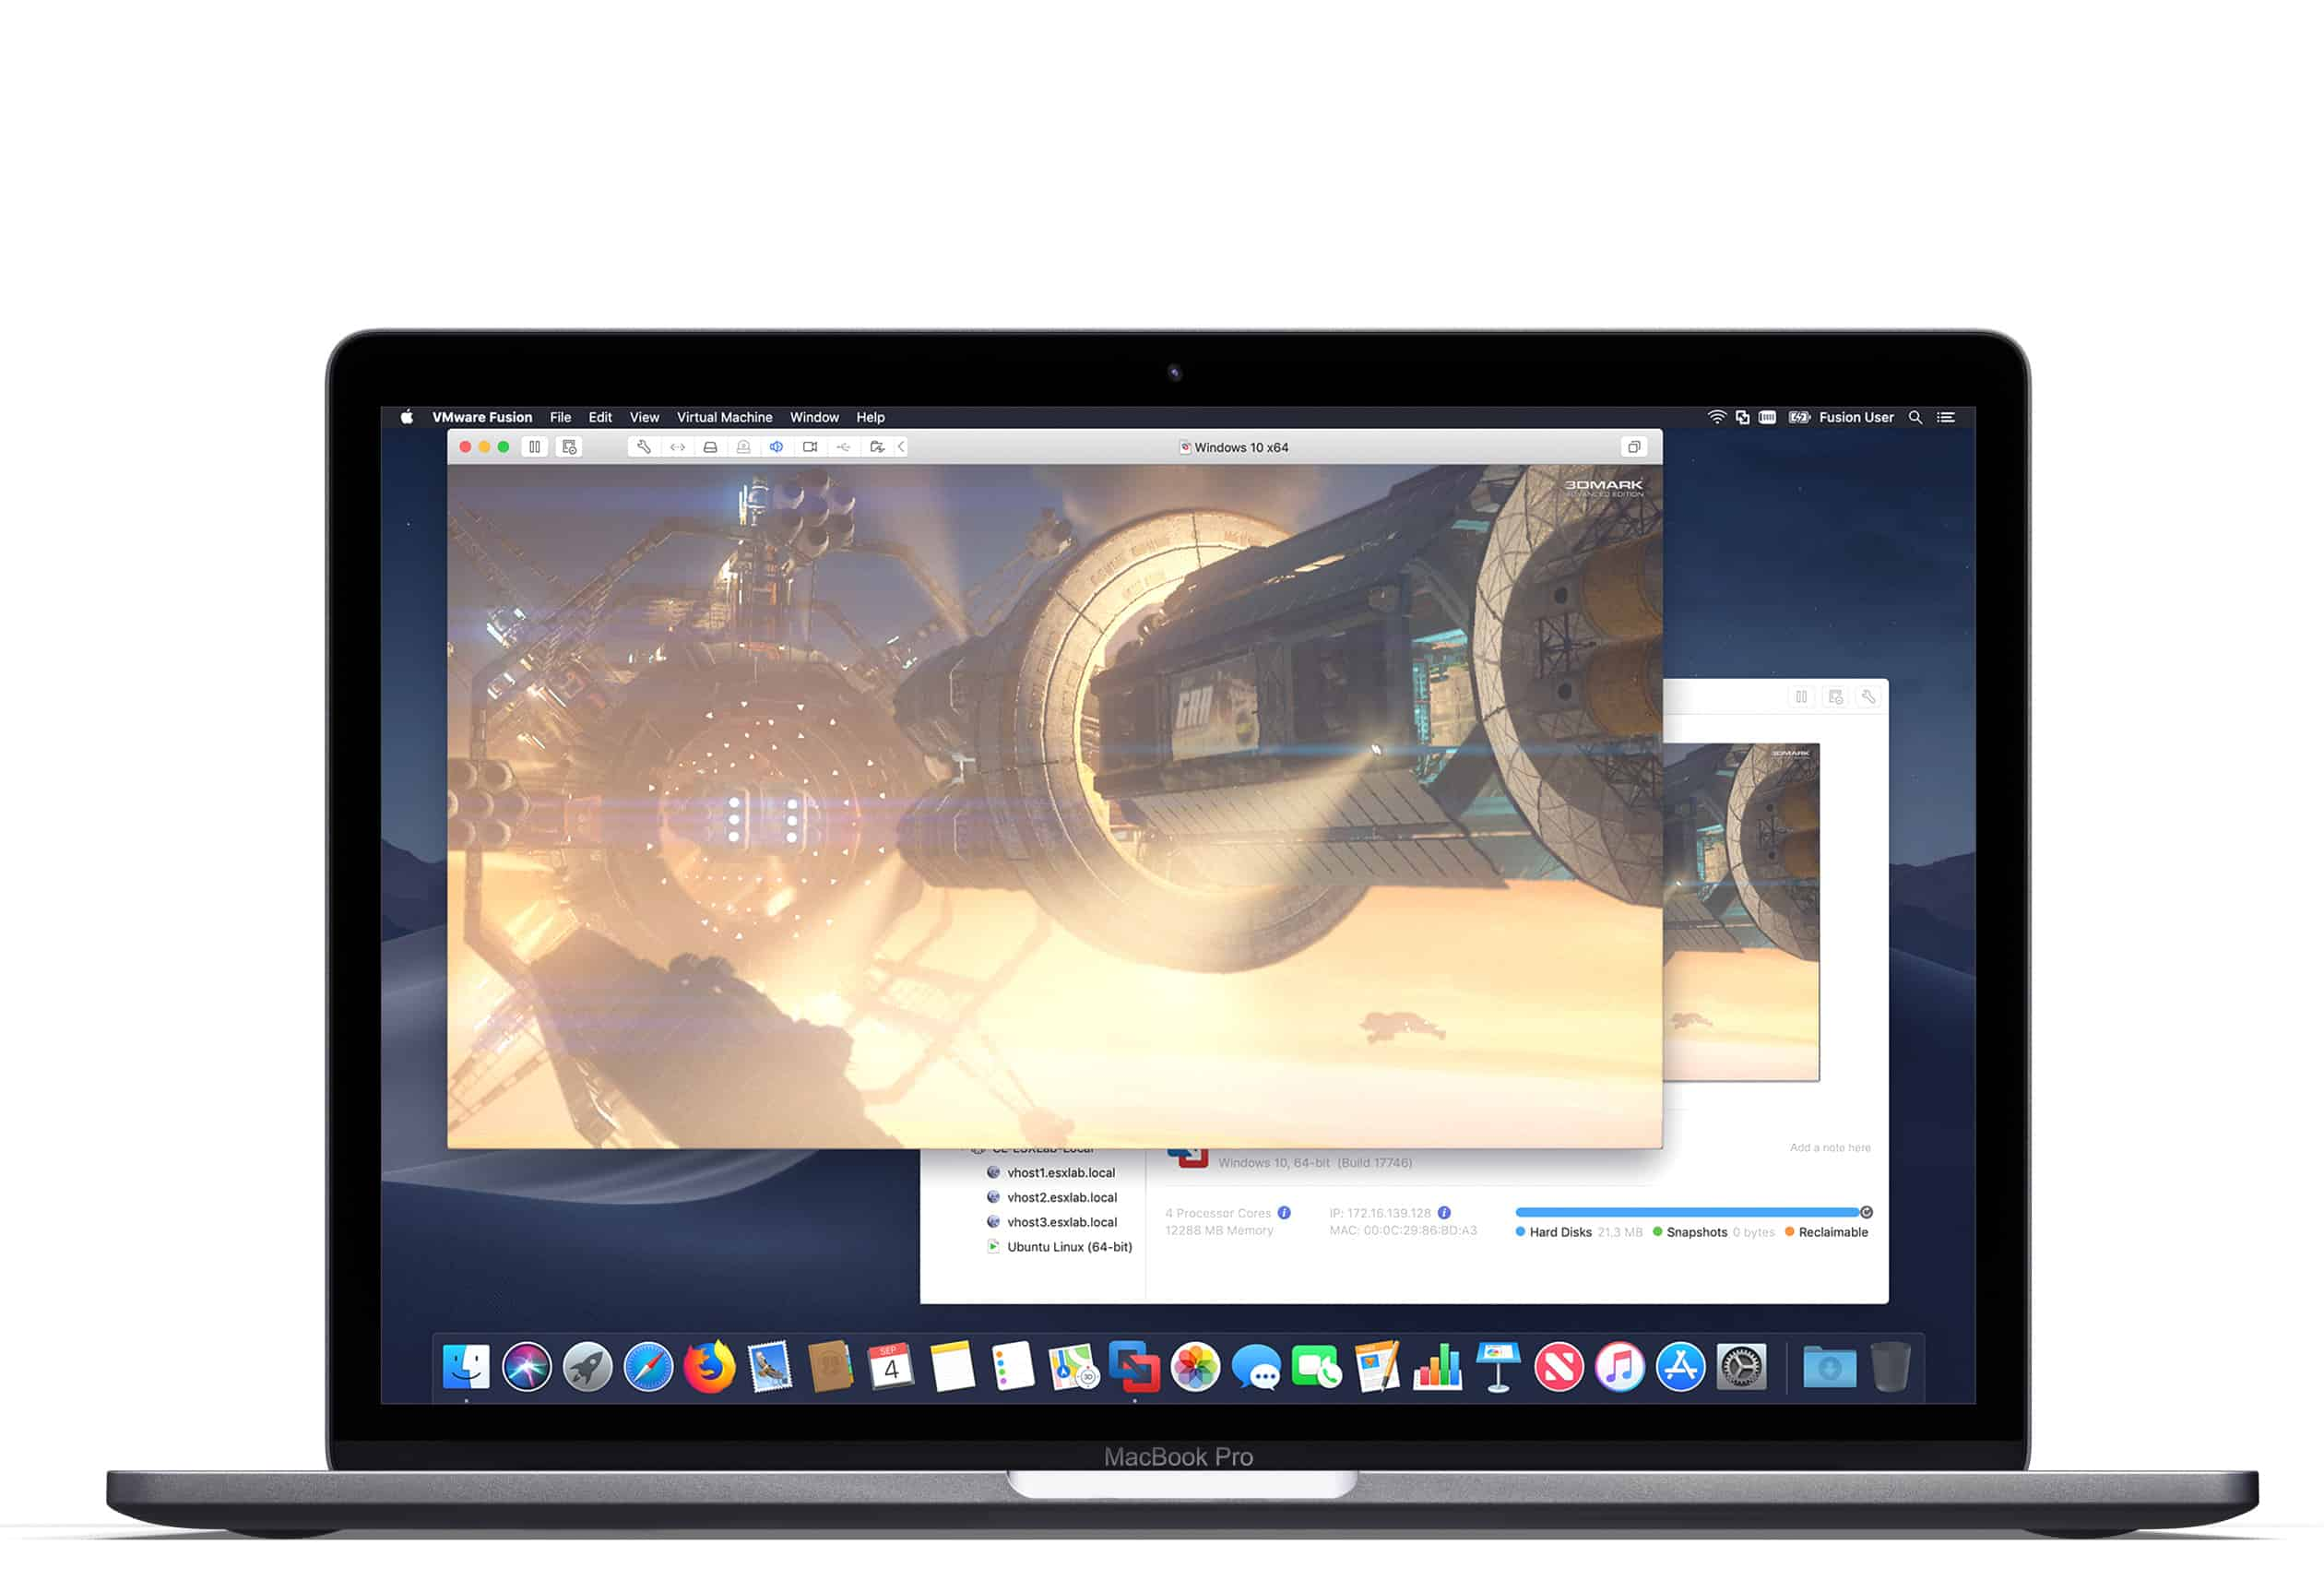 VMware Fusion 11 adds support for macOS Mojave, 18-core iMac Pro